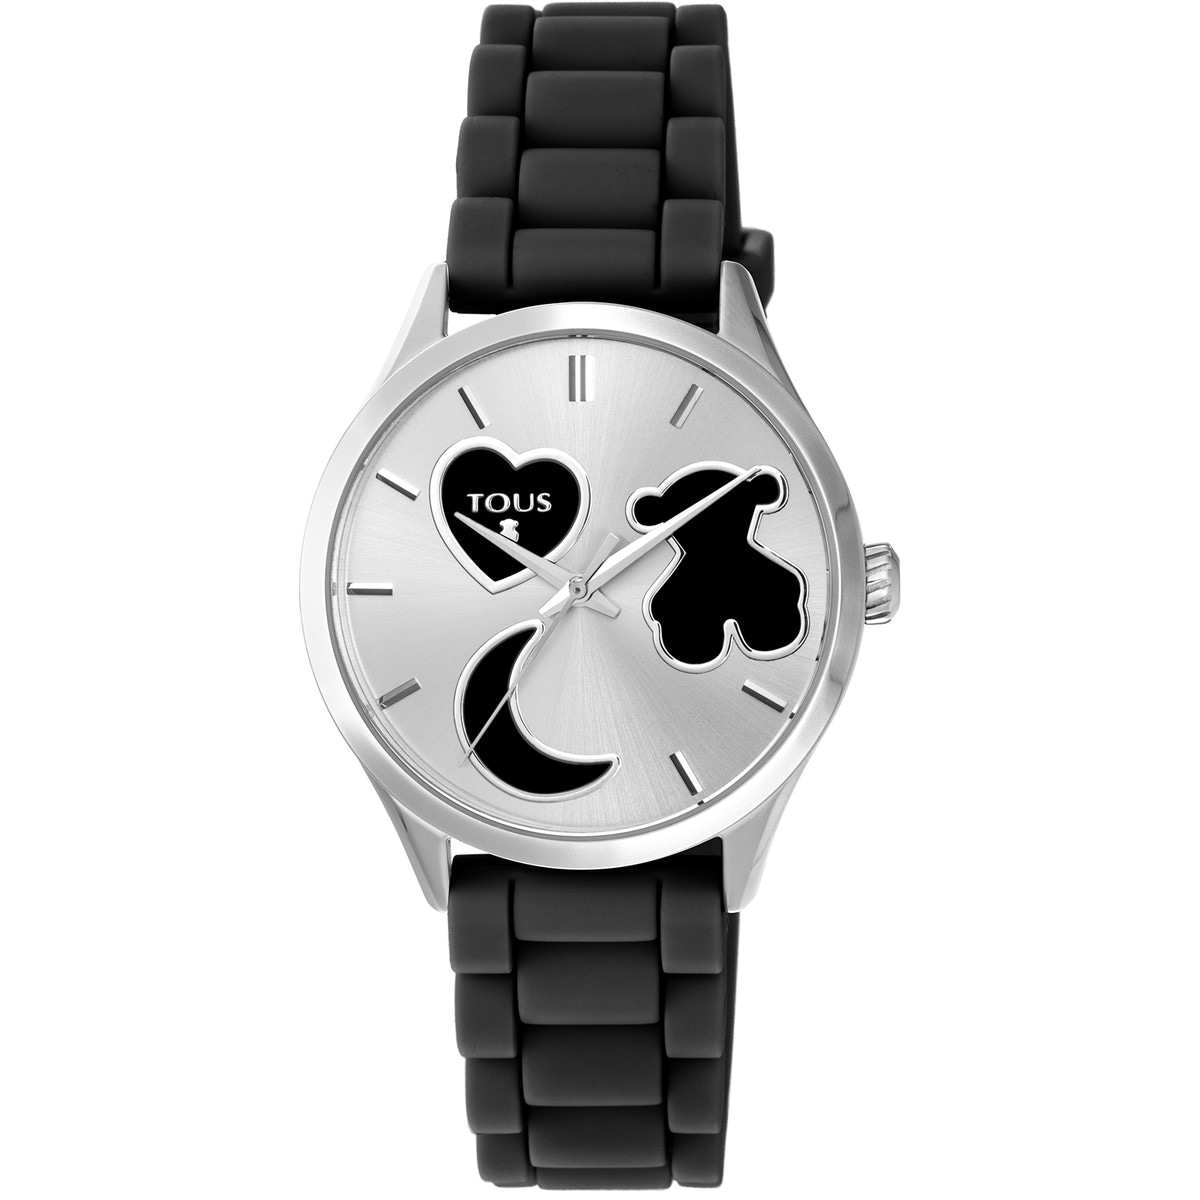 Steel Sweet Power Watch with black silicone strap